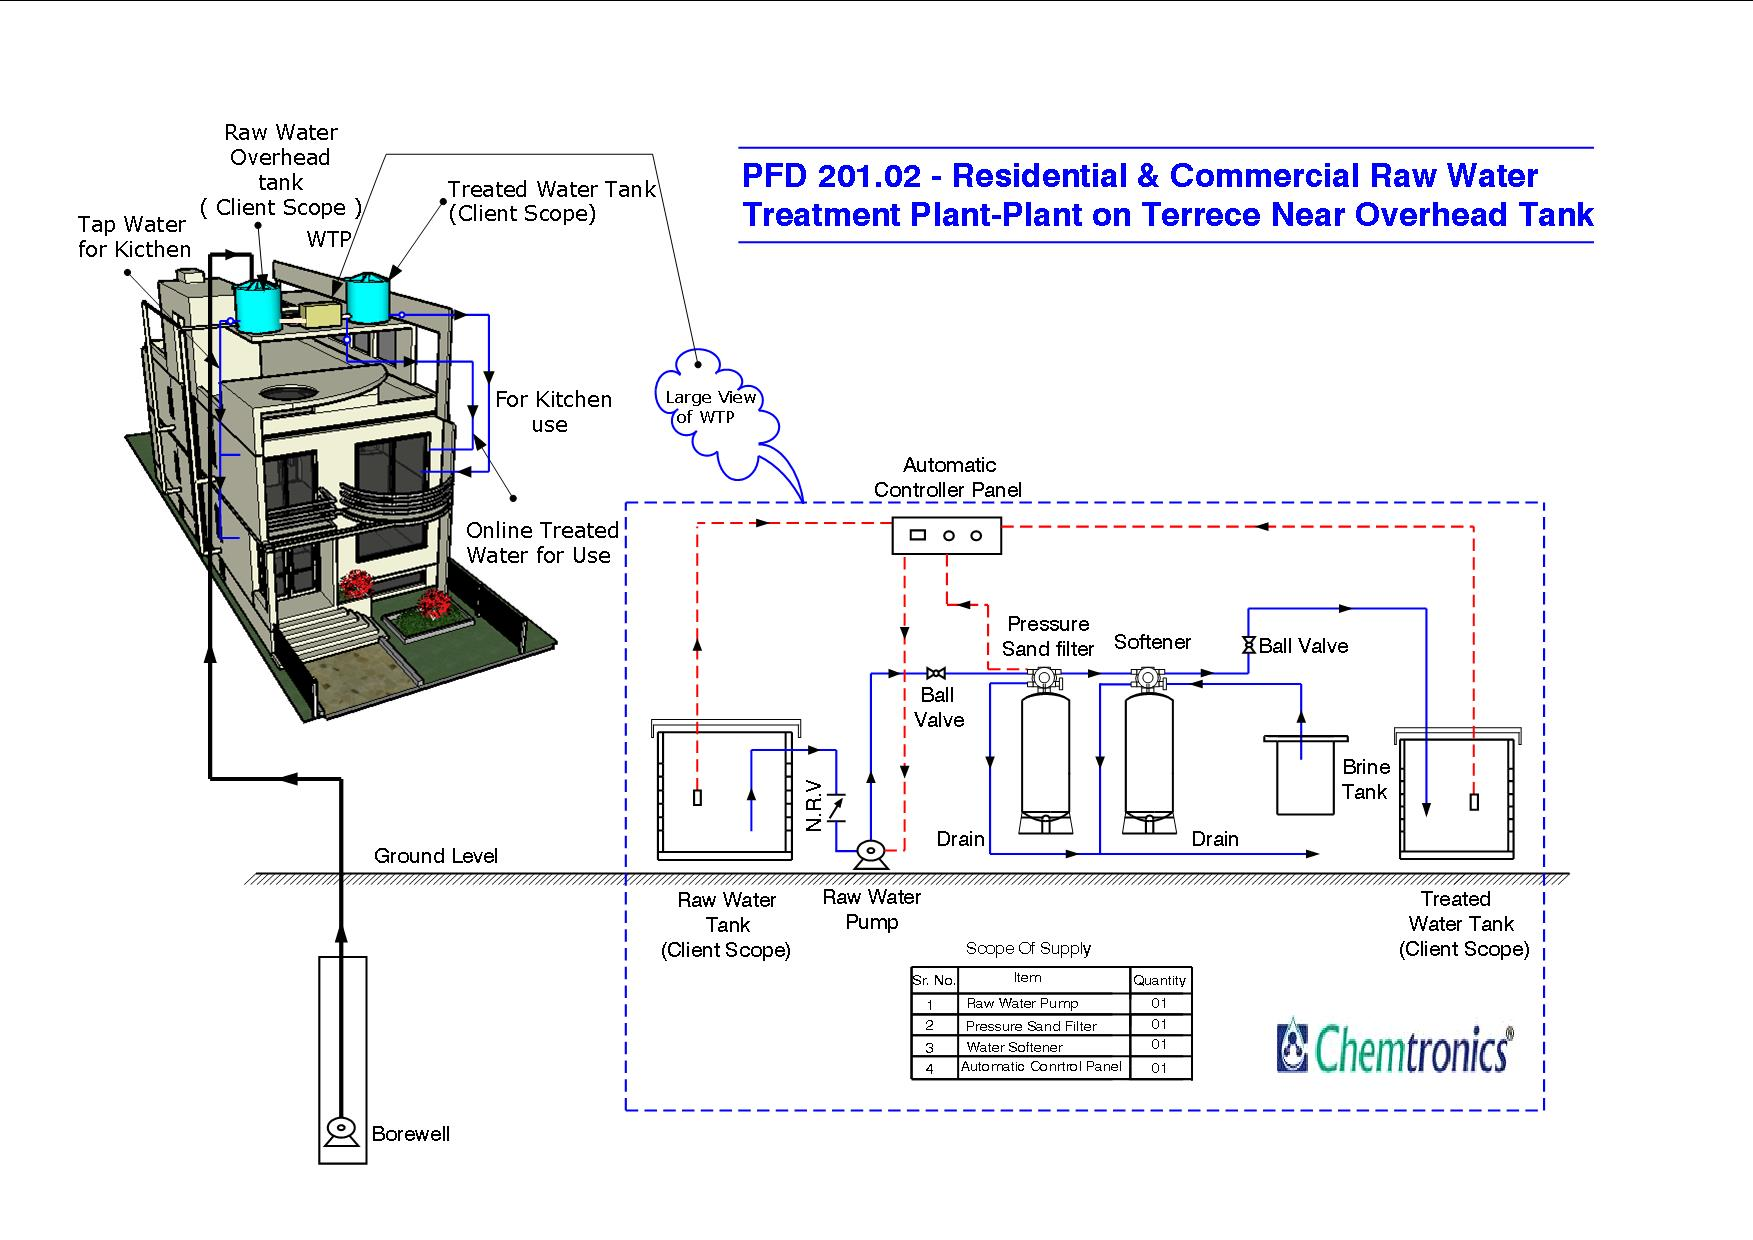 Residential raw water treatment plant mumbai india pfd 20102 plant terrace near overhead tank ccuart Choice Image